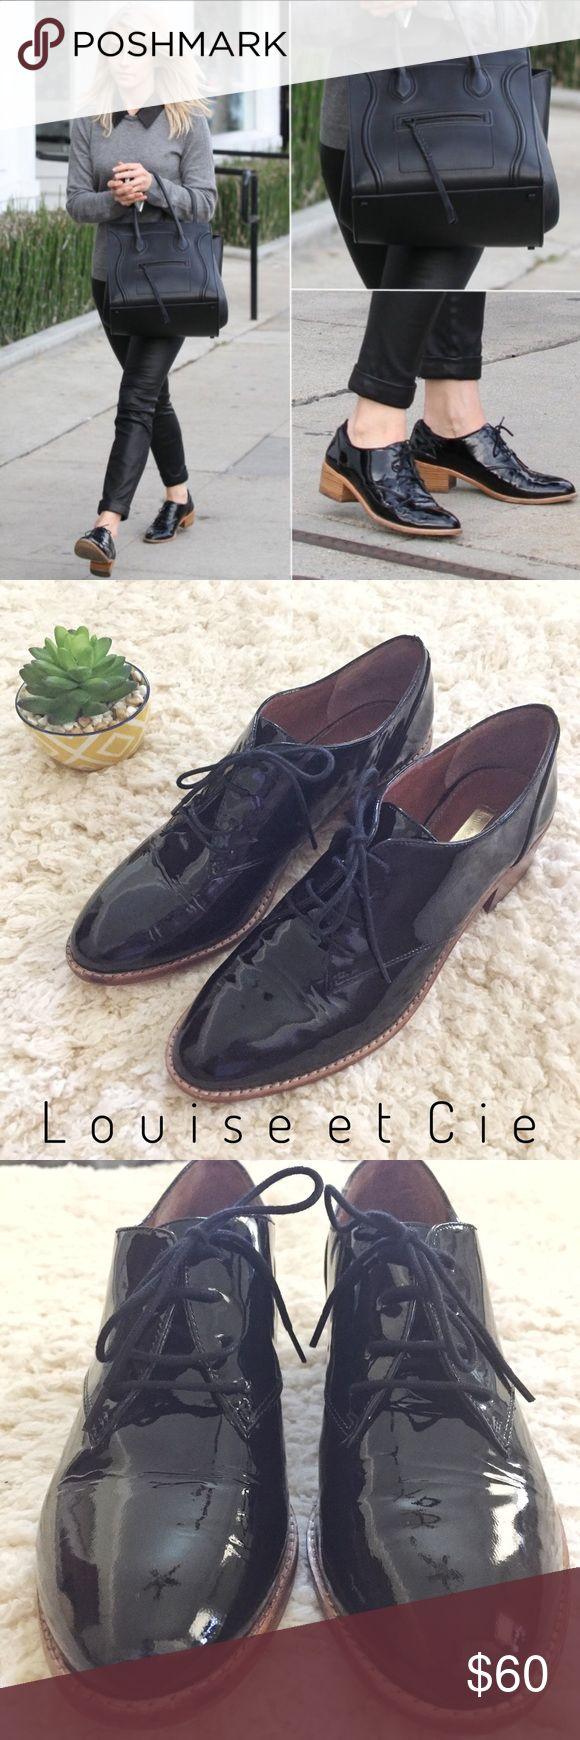 """•Louise et Cie• Black Patent Oxford Fernanda These gorgeous patent leather oxfords from Louise Erdrich Cie (by Vince Camuto) are in EUC and feature a lace-up closure and slight 2"""" heel (approximate). Only worn once. Add flare to any outfit! Bundle and save on shipping! Louise et Cie Shoes"""